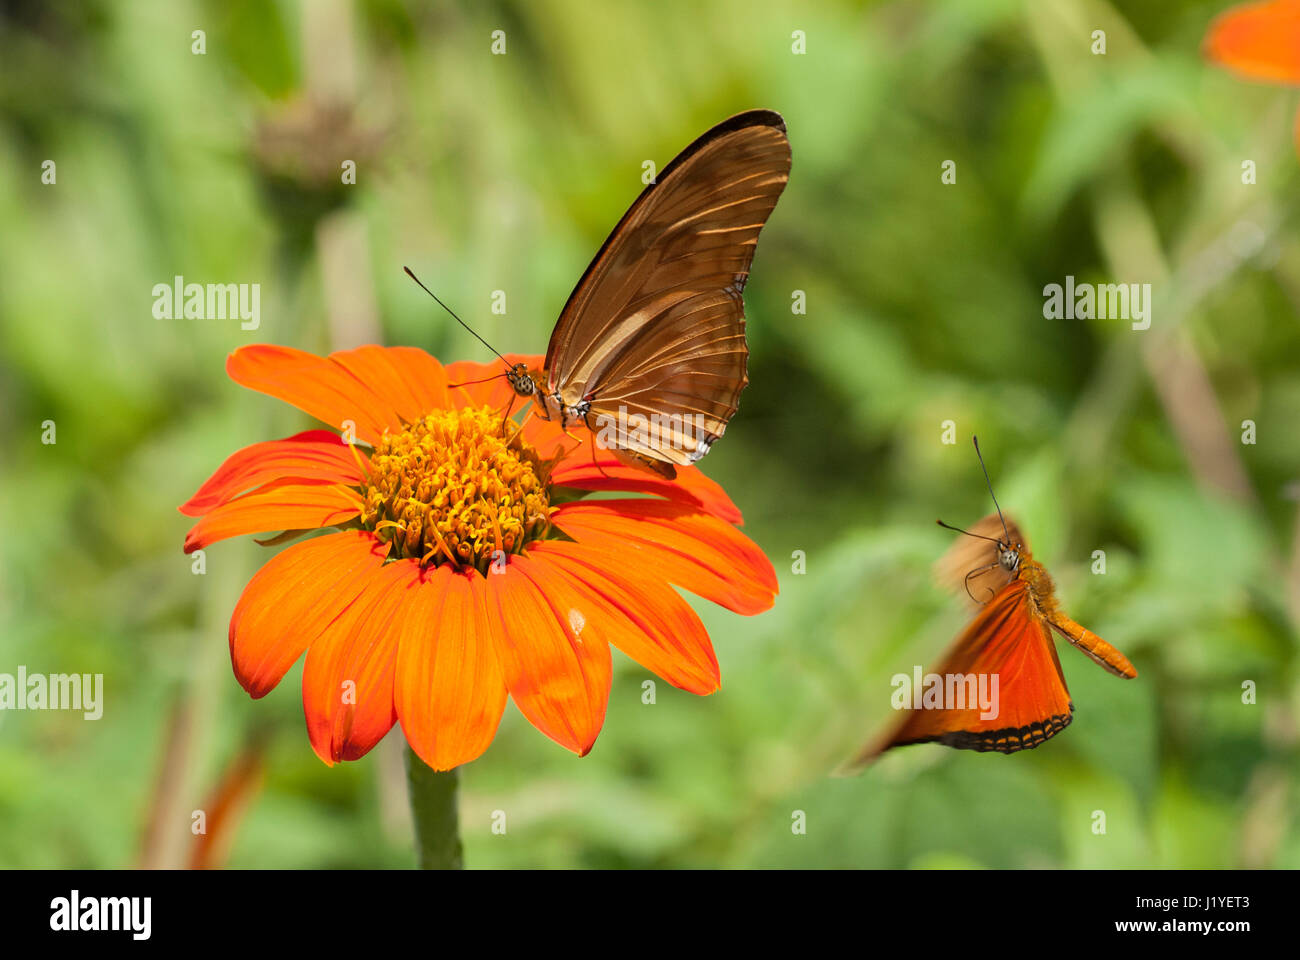 Julia butterfly (Dryas iulia) feeding on nectar from an orange coloured flower while another Julia flies towards - Stock Image